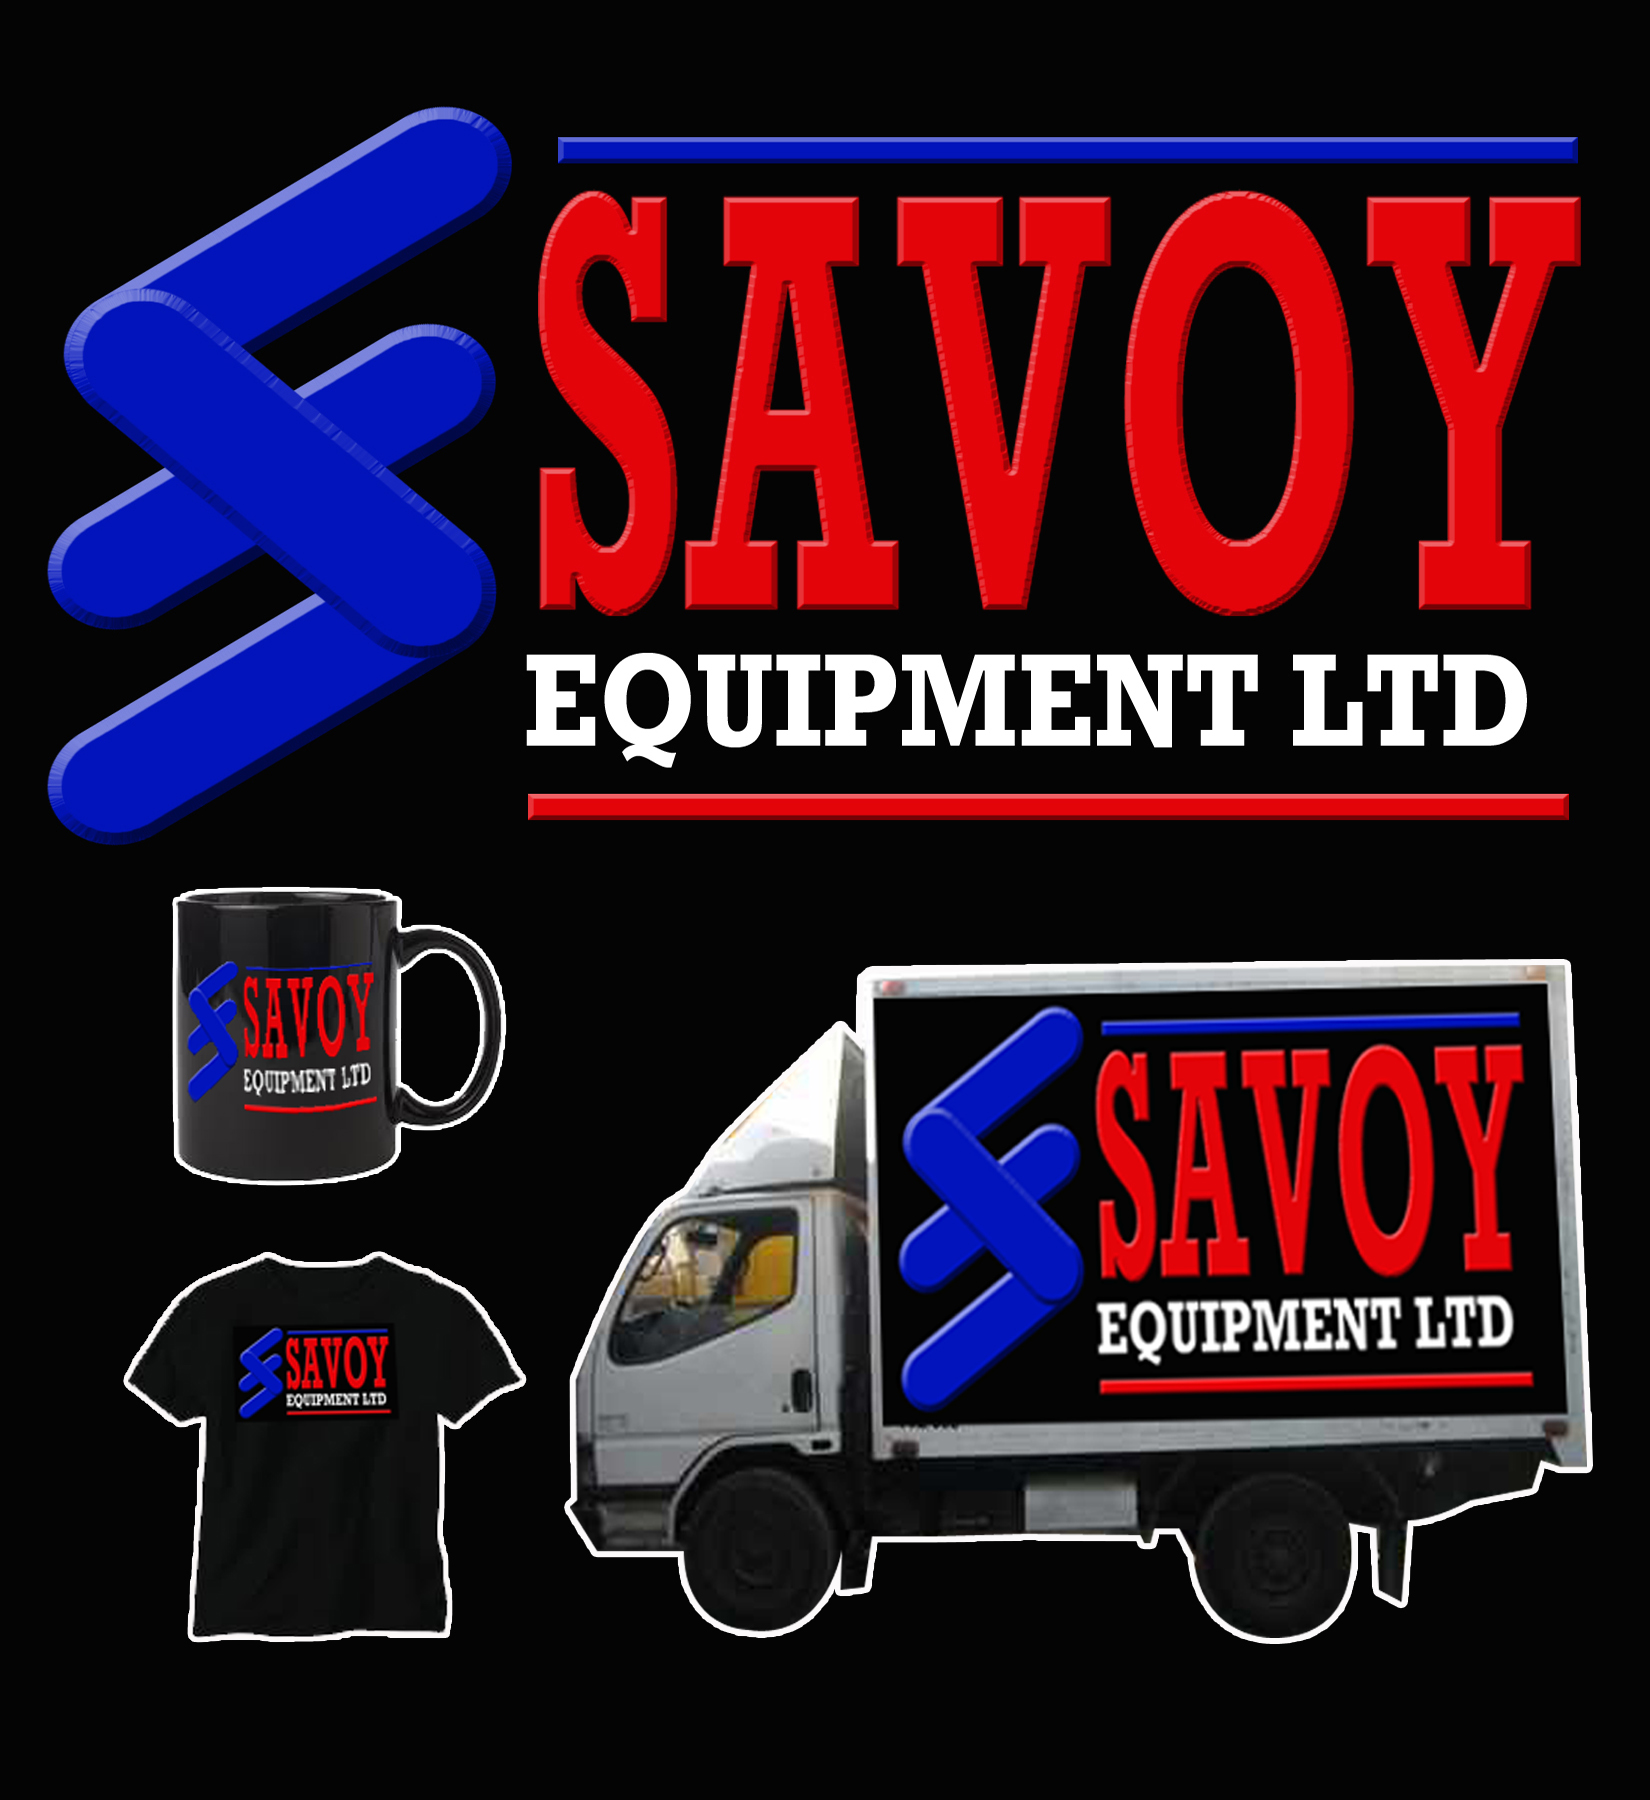 Logo Design by Kitz Malinao - Entry No. 104 in the Logo Design Contest Inspiring Logo Design for Savoy Equipment Ltd..